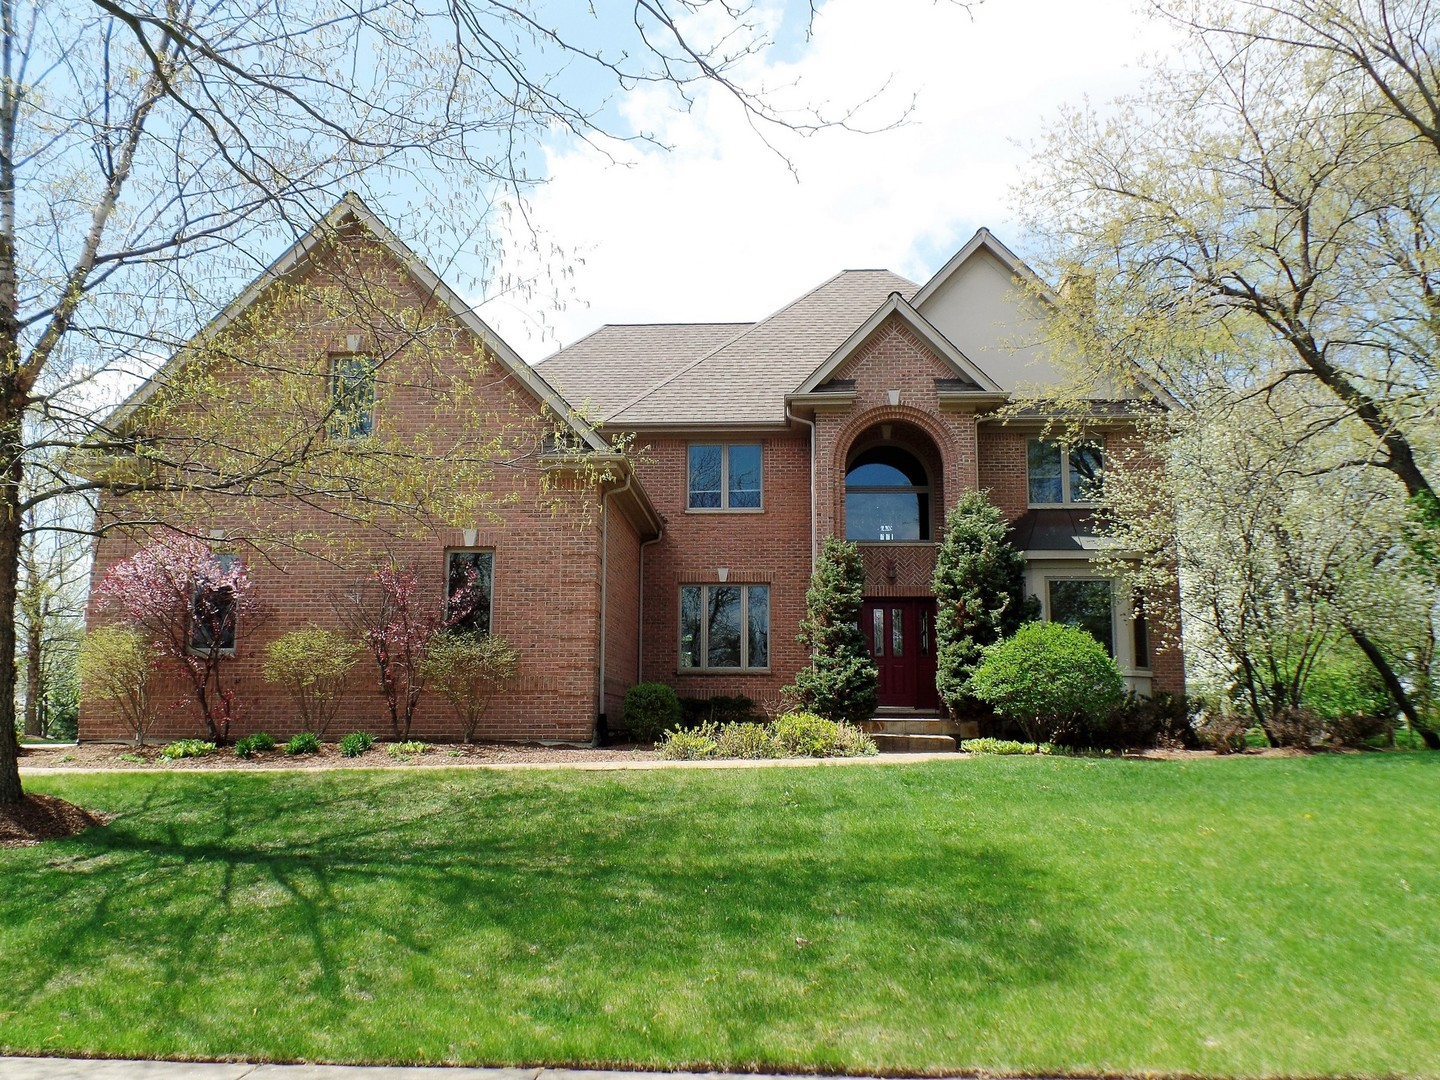 3288 Oak Knoll Road, Carpentersville, IL 60110